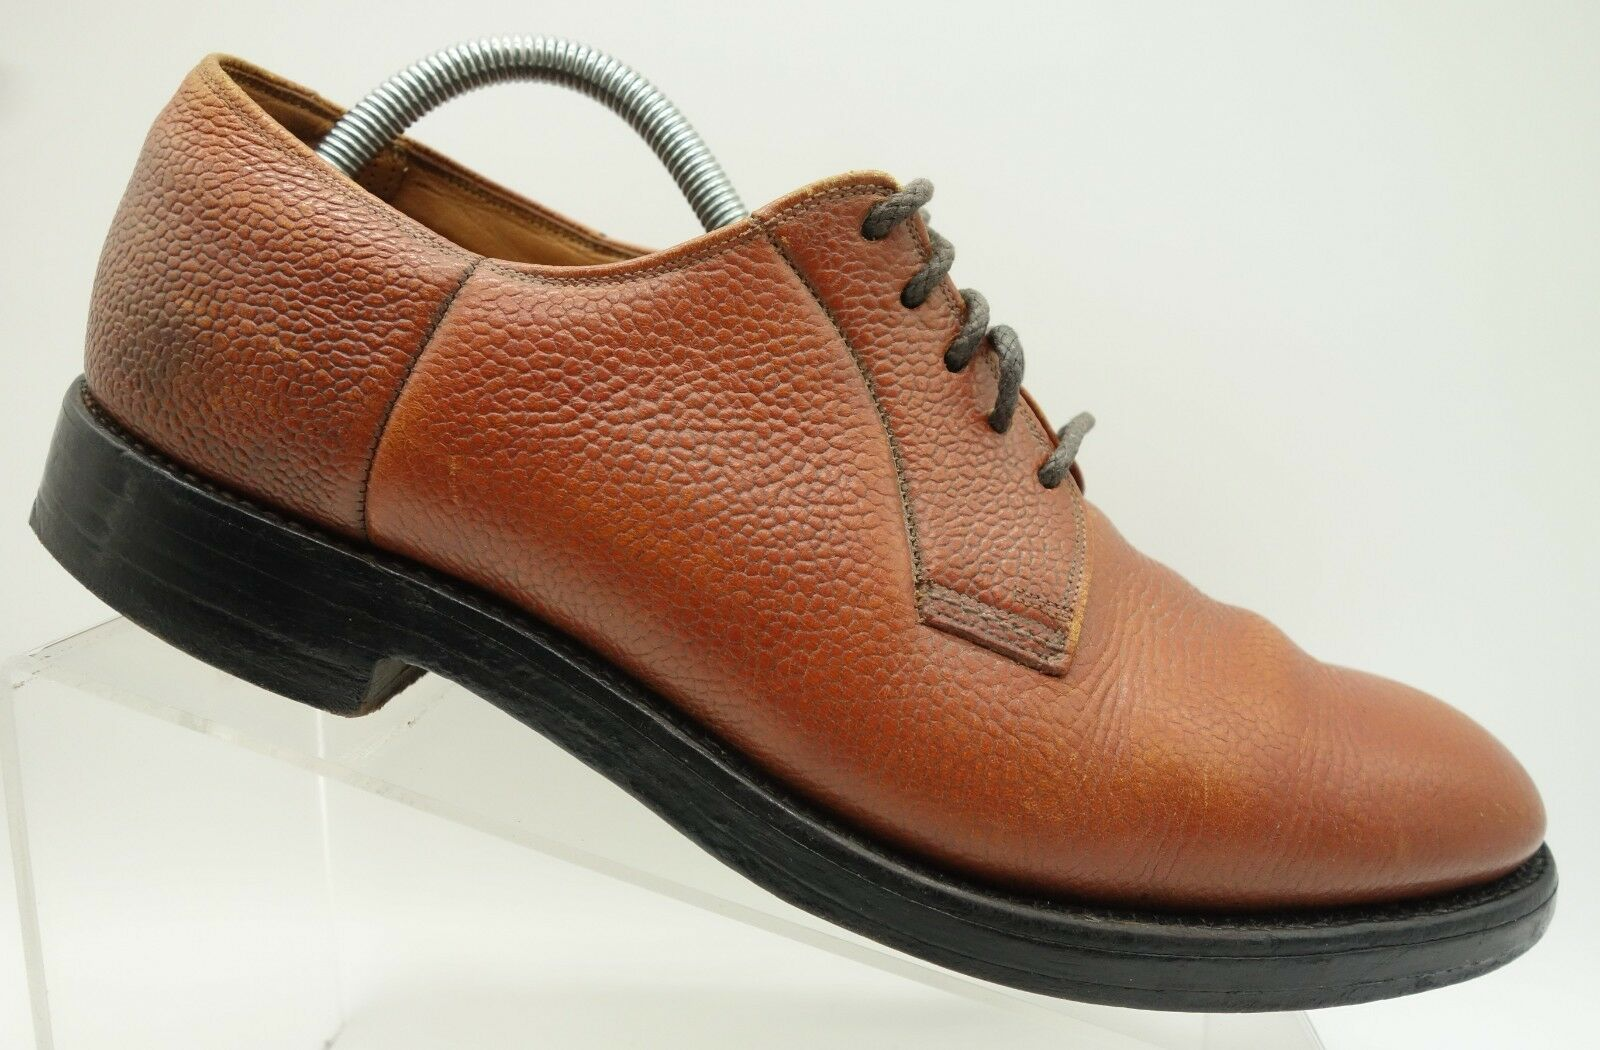 Boyd's Threadneedle Street Marronee Leather Plain Toe Toe Toe Oxford V Cleat scarpe Uomo 9 C 6ed905